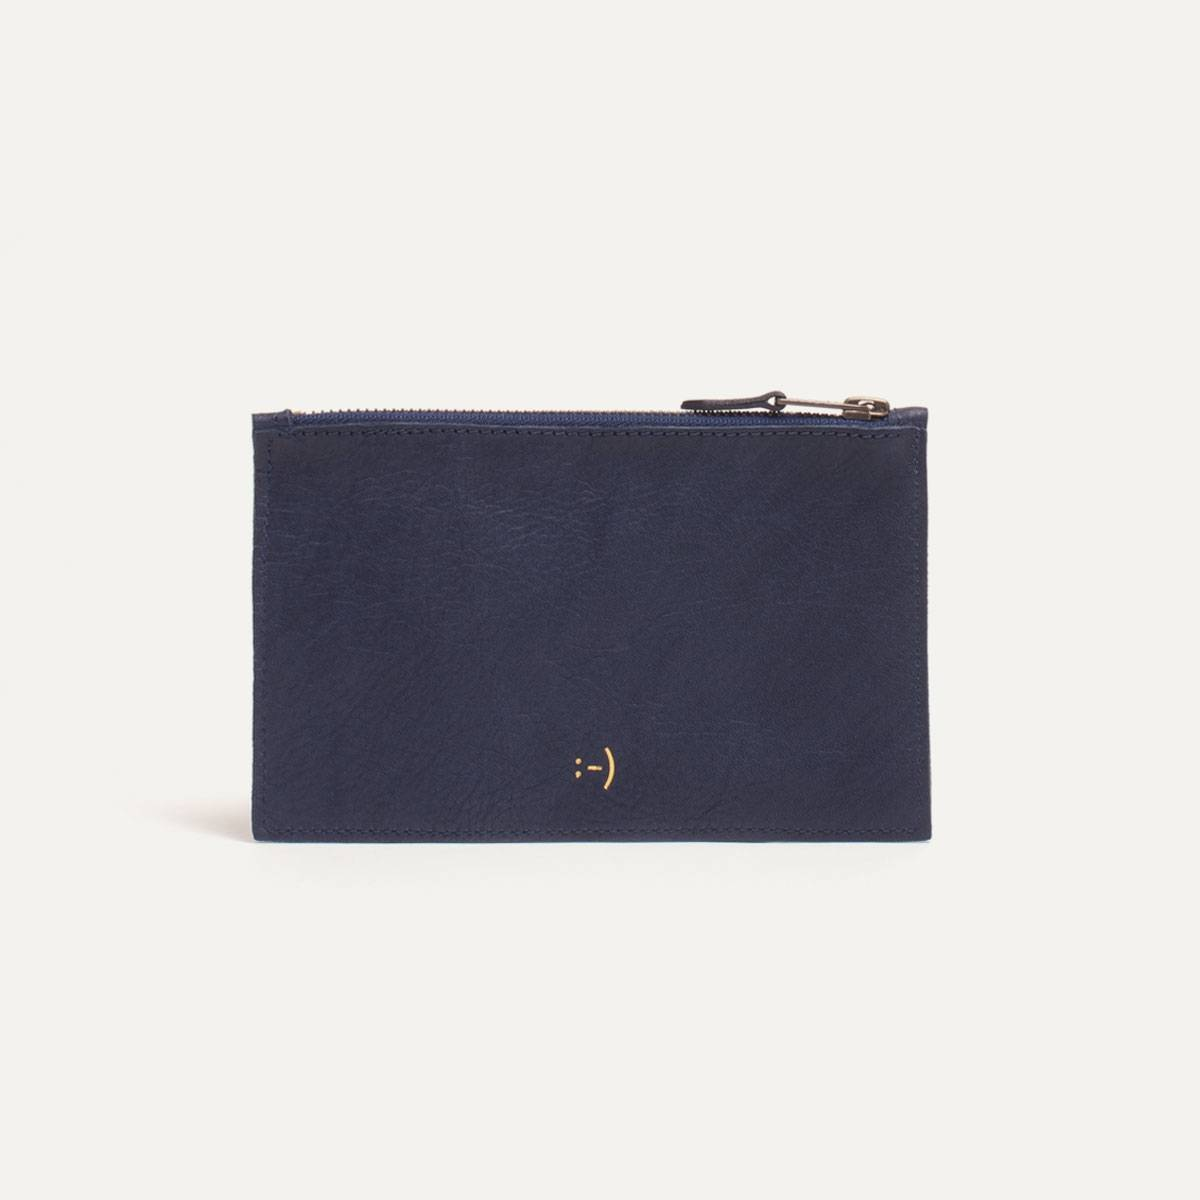 Leather Pouch COSMO S - Navy blue (image n°1)